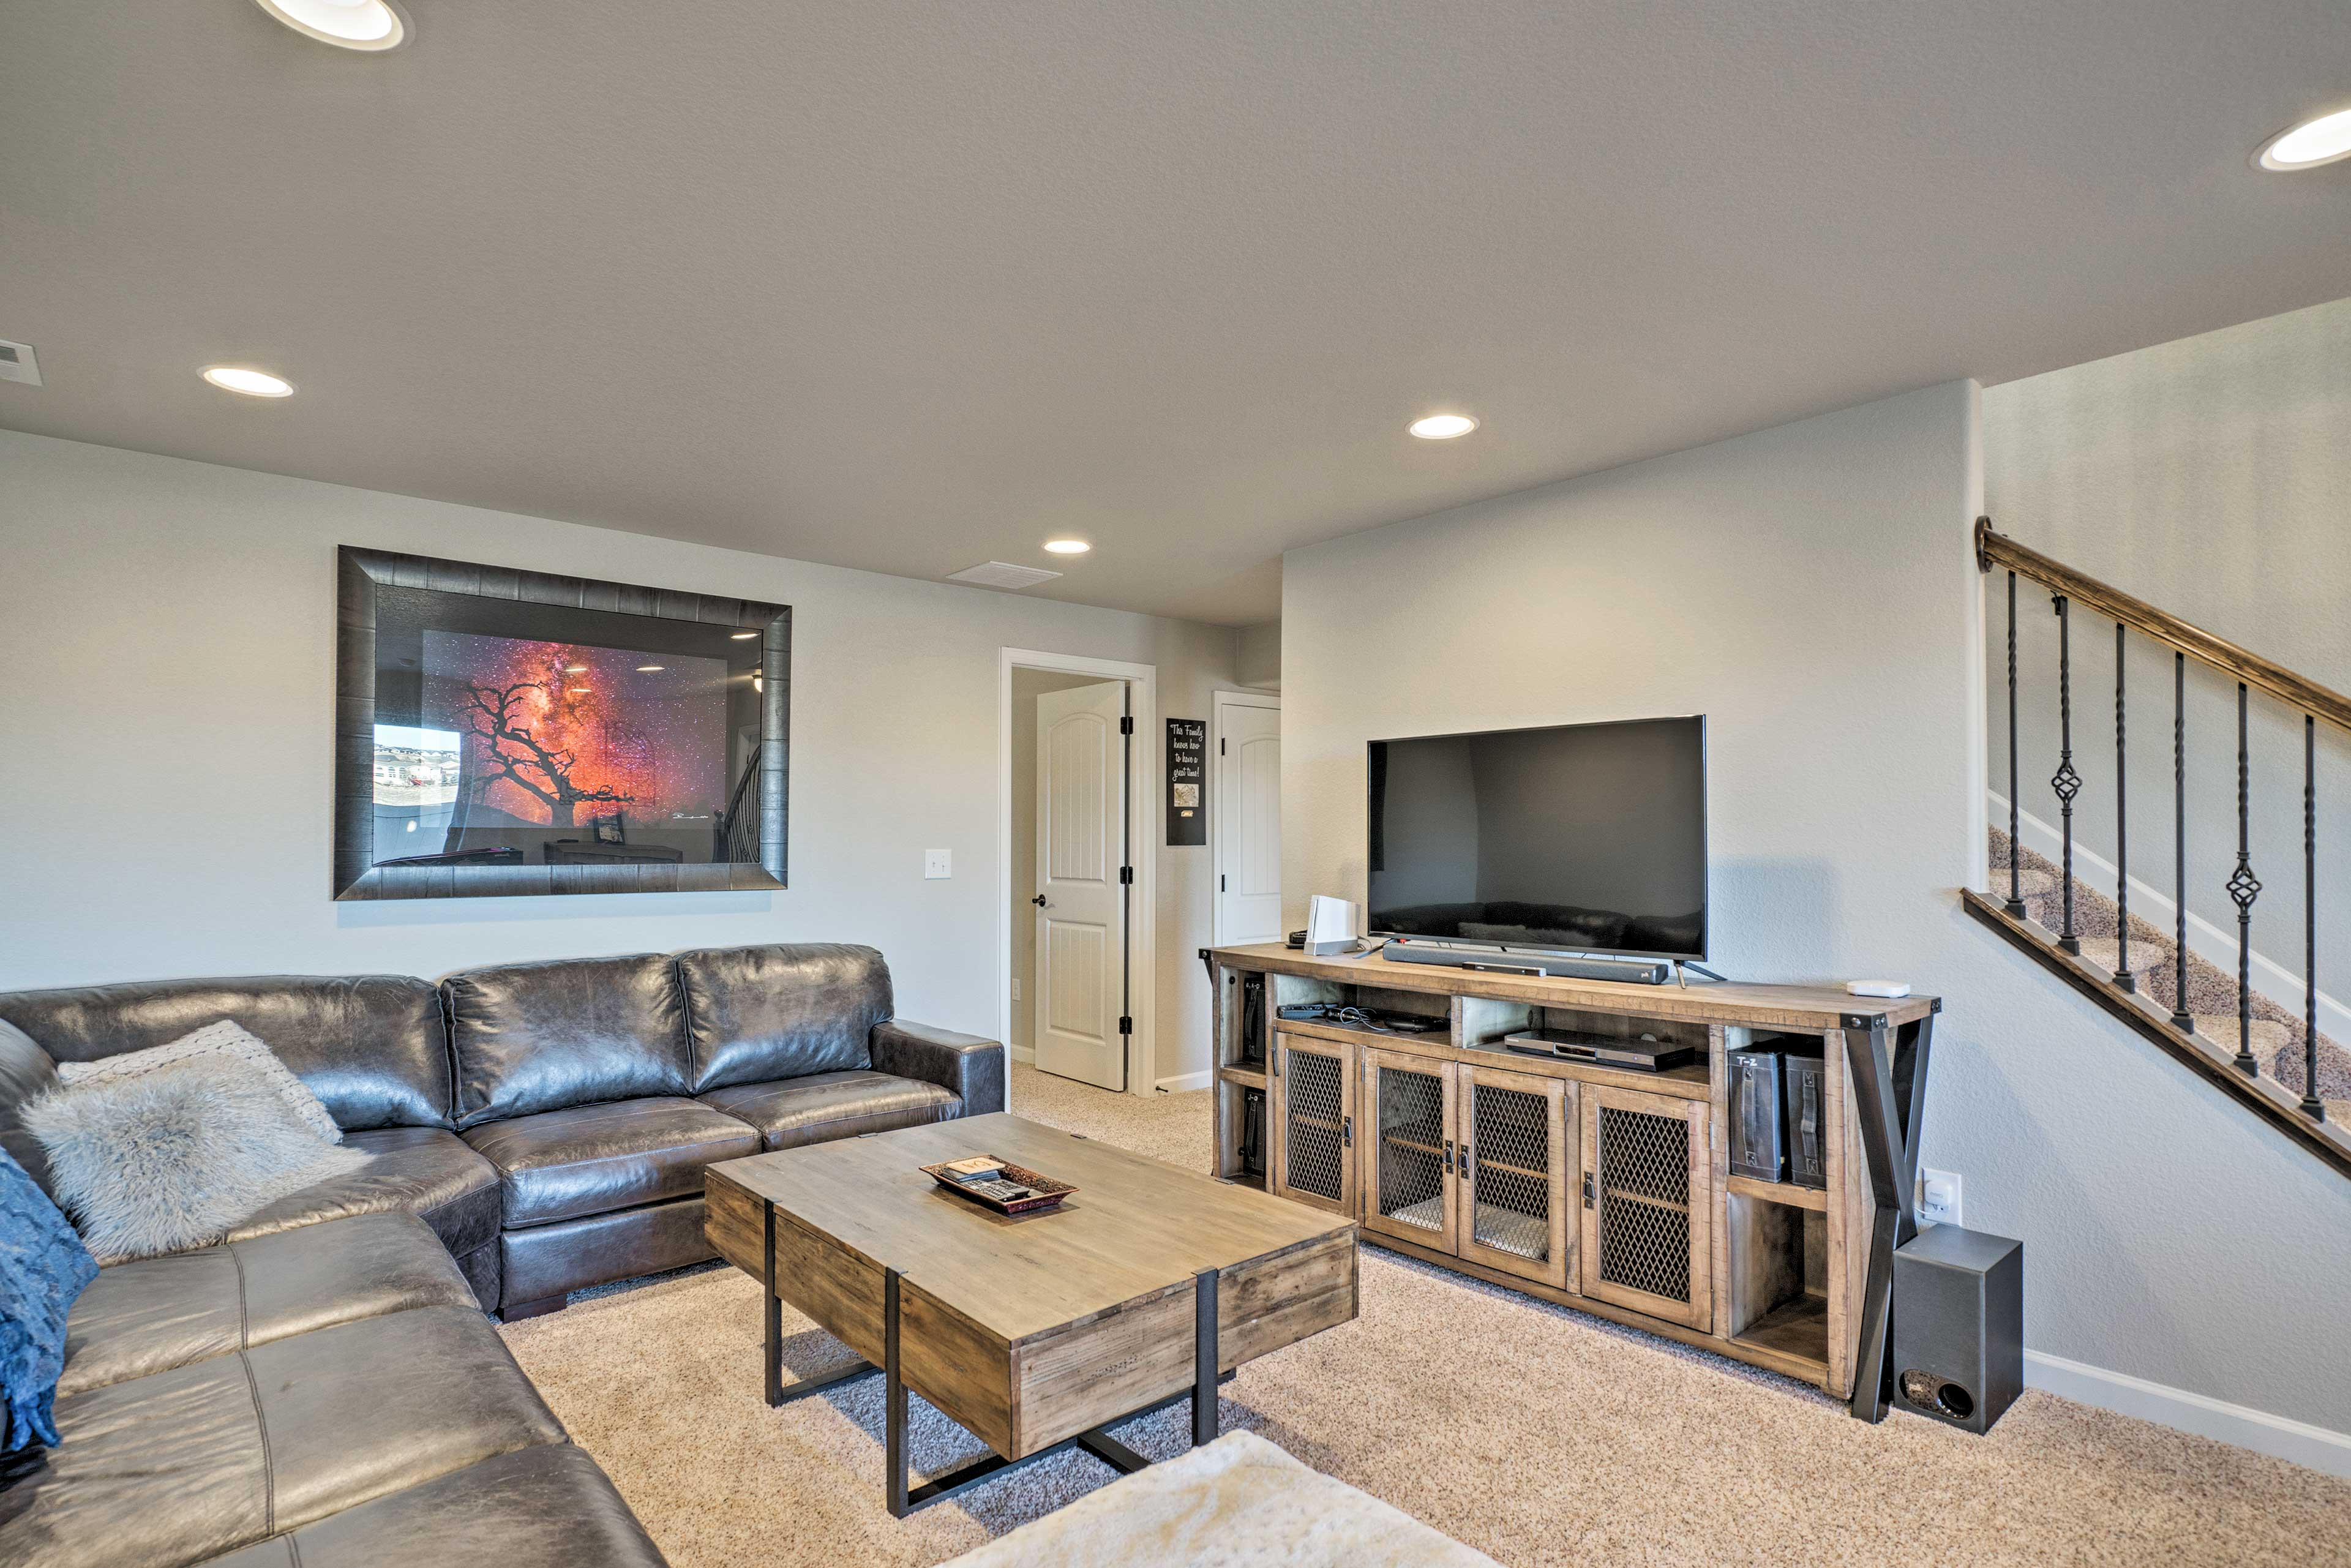 The basement has a multi-use table for pool & foosball, with a flat-screen TV.